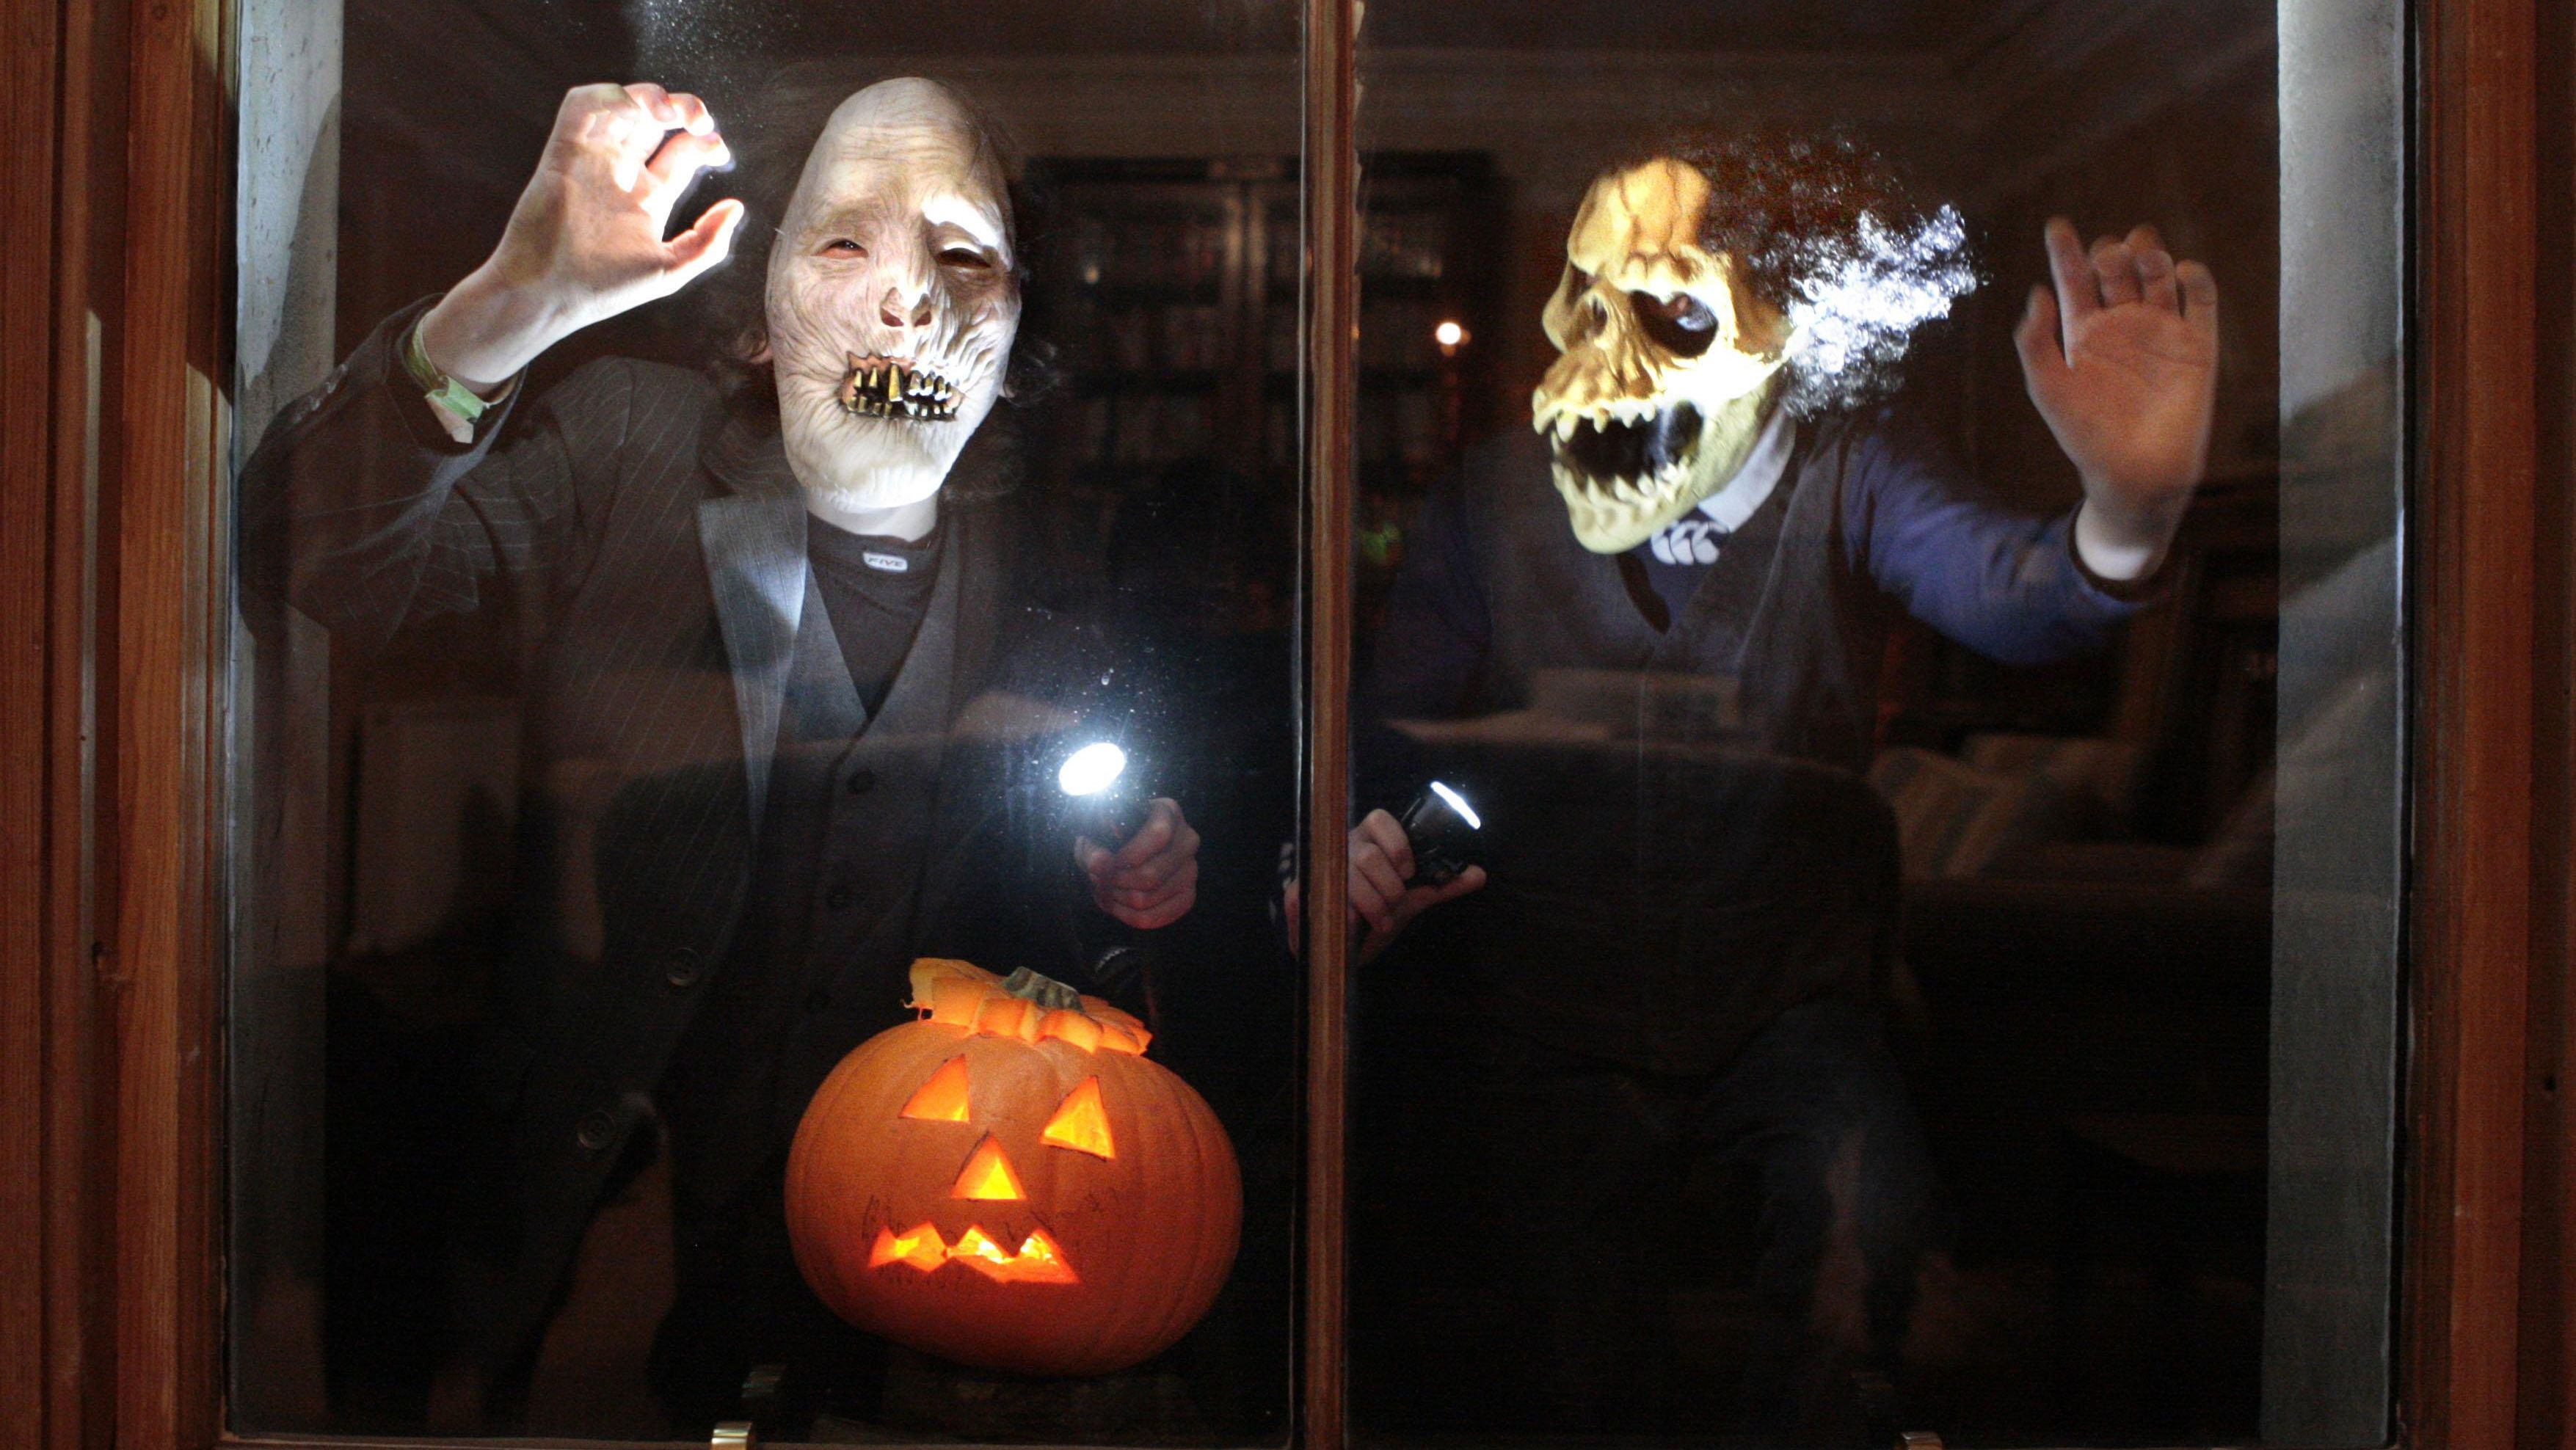 'The safest thing to do this year is to stay at home' - Scottish children told to avoid guising this Halloween